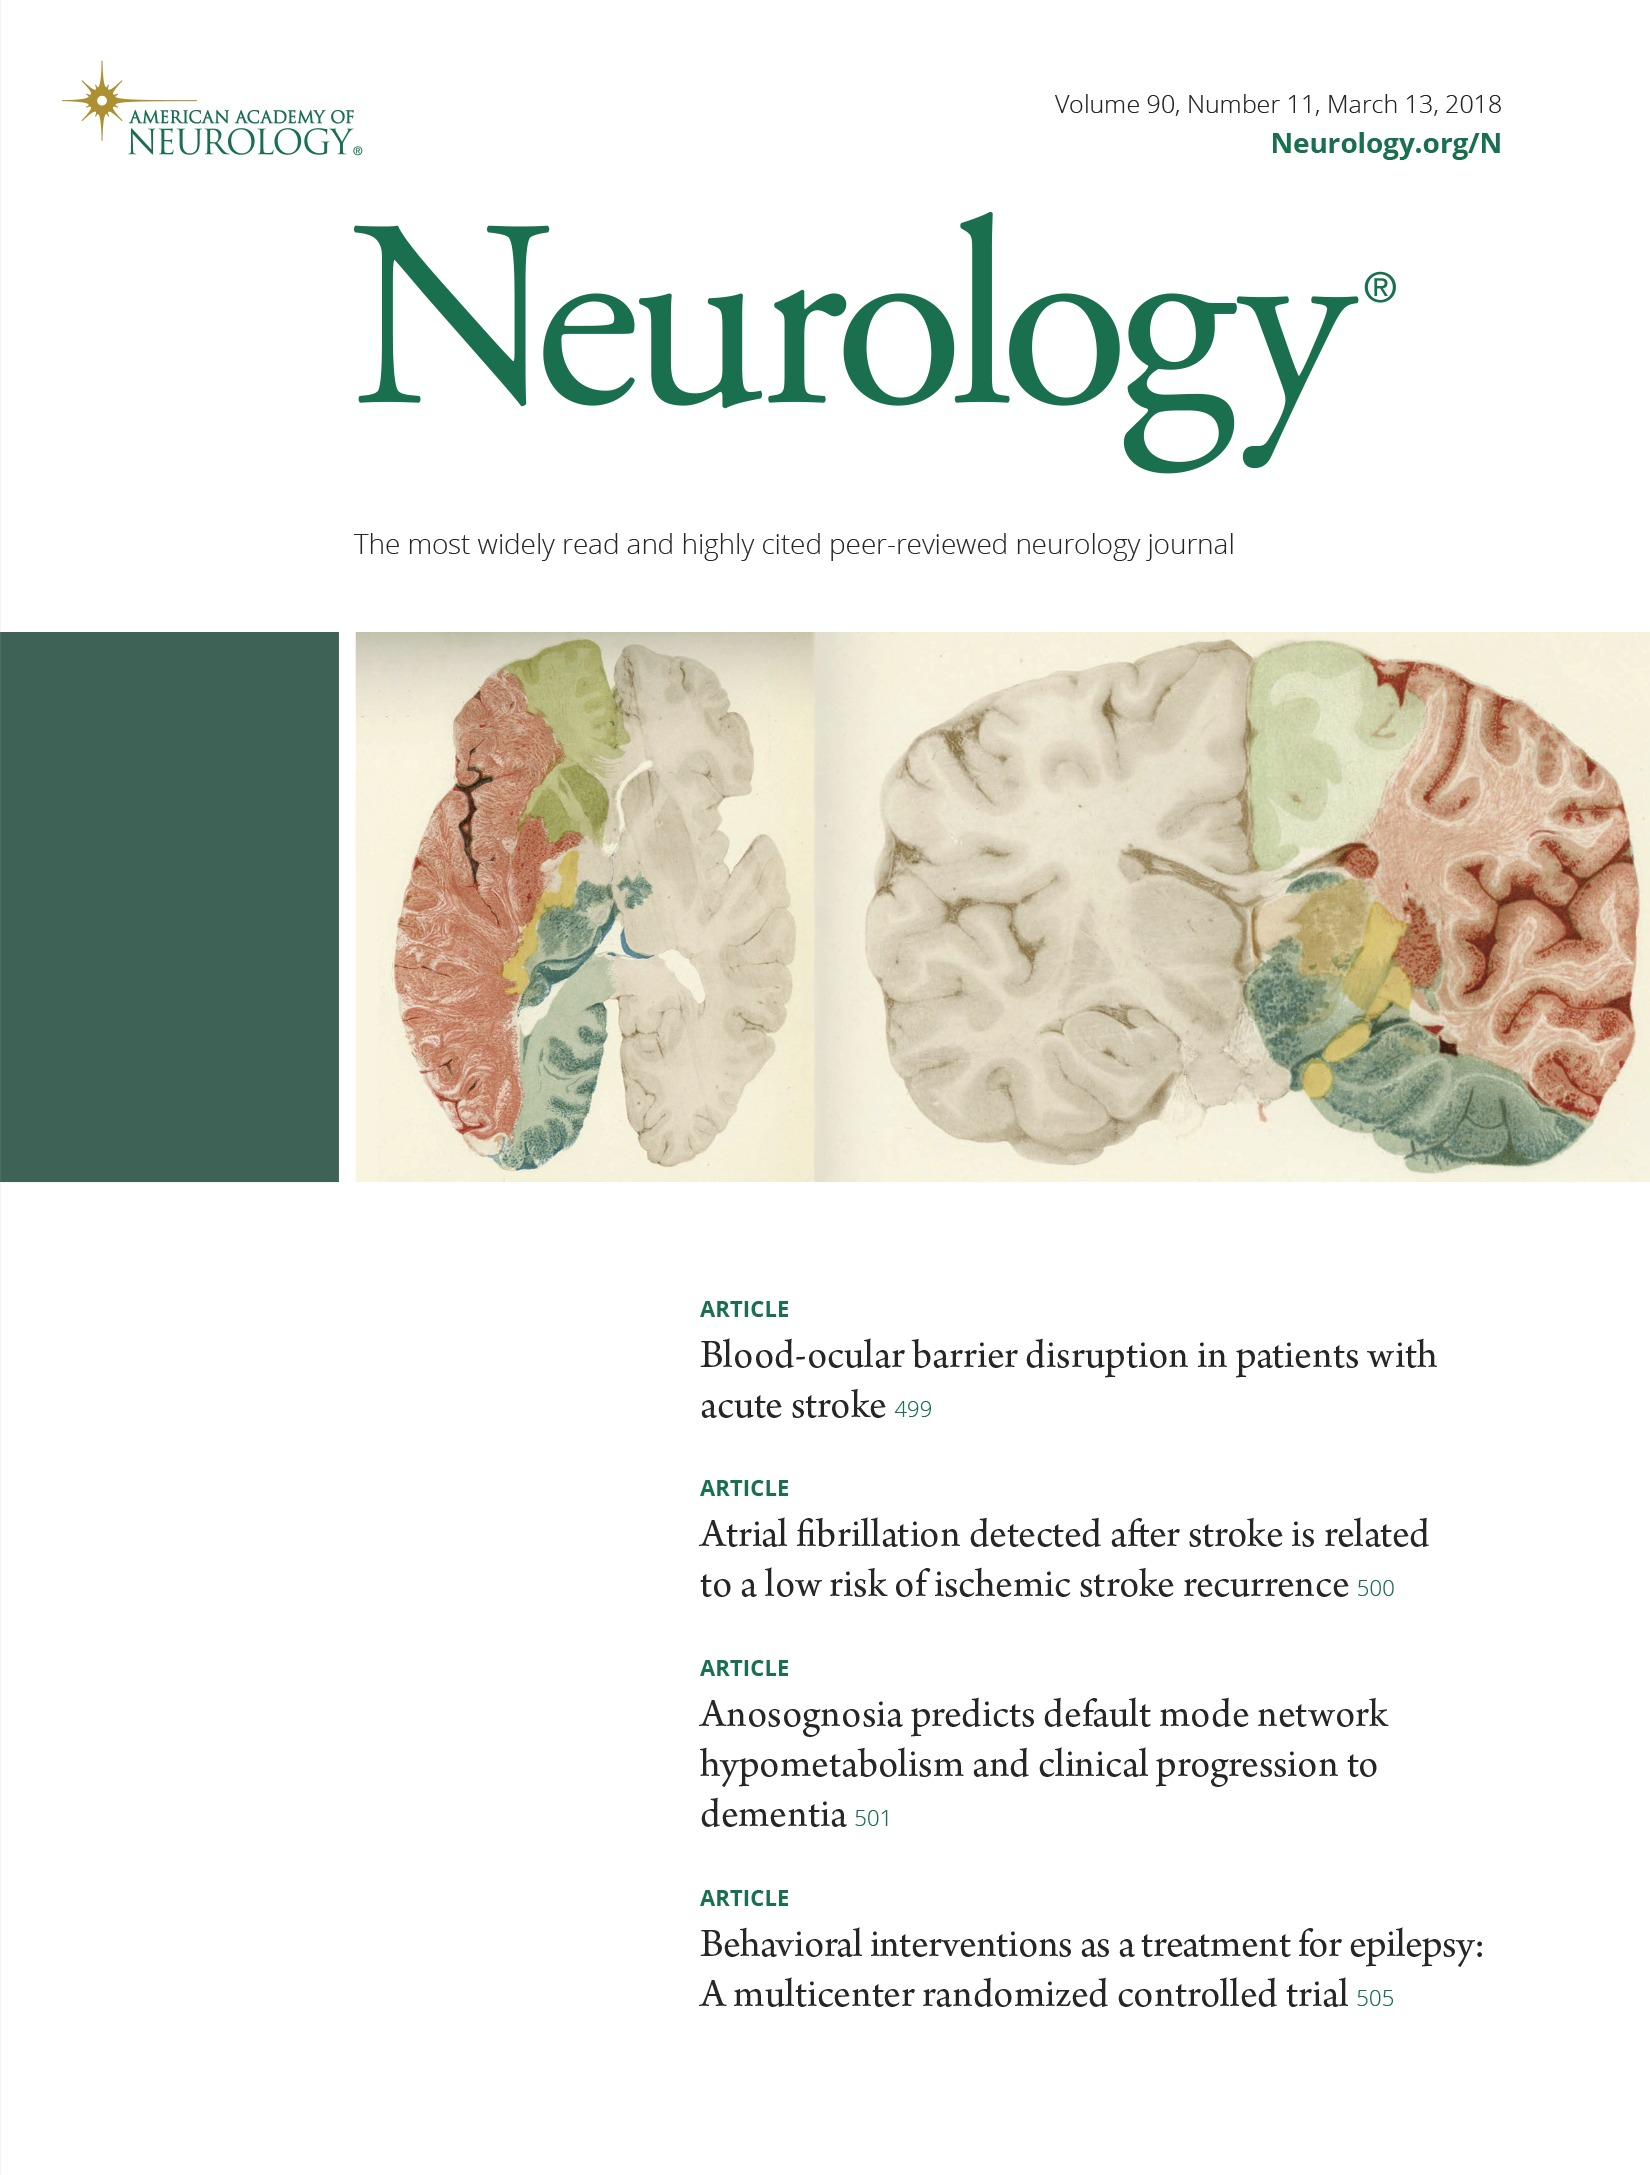 Anosognosia predicts default mode network hypometabolism and ...